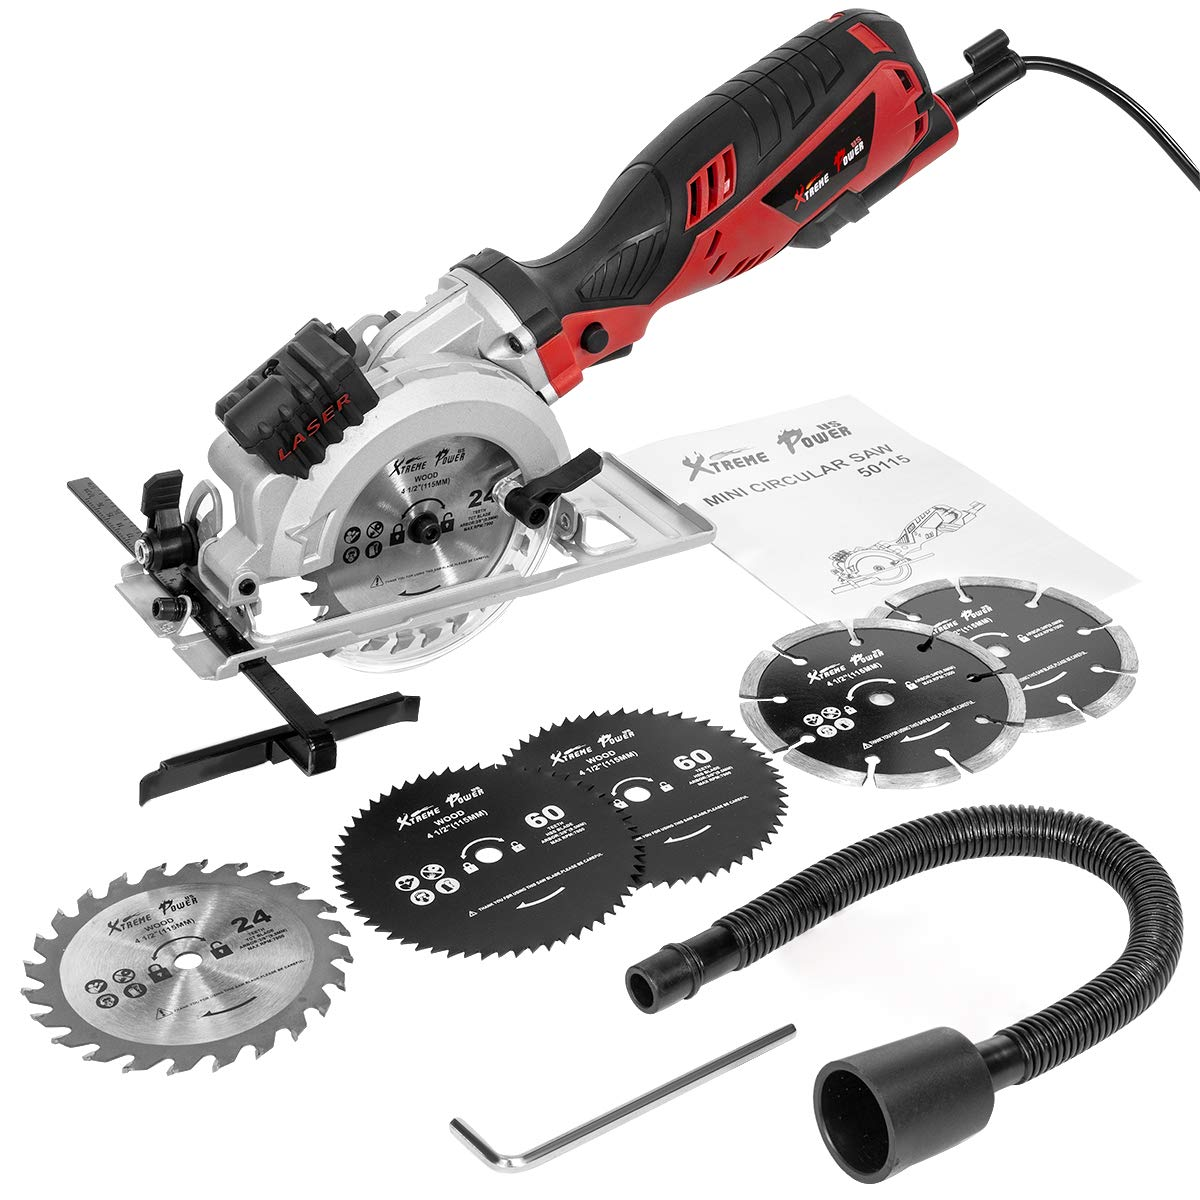 TACKLIFE Compact Circular Saw with 6 Blades 4-3 4 4-1 2 , Laser Guide, 5.8A, Cutting Depth 1-11 16 90 , 1-3 8 45 , Metal Handle, Versatile for Wood, Soft Metal, Tile and Plastic Cuts